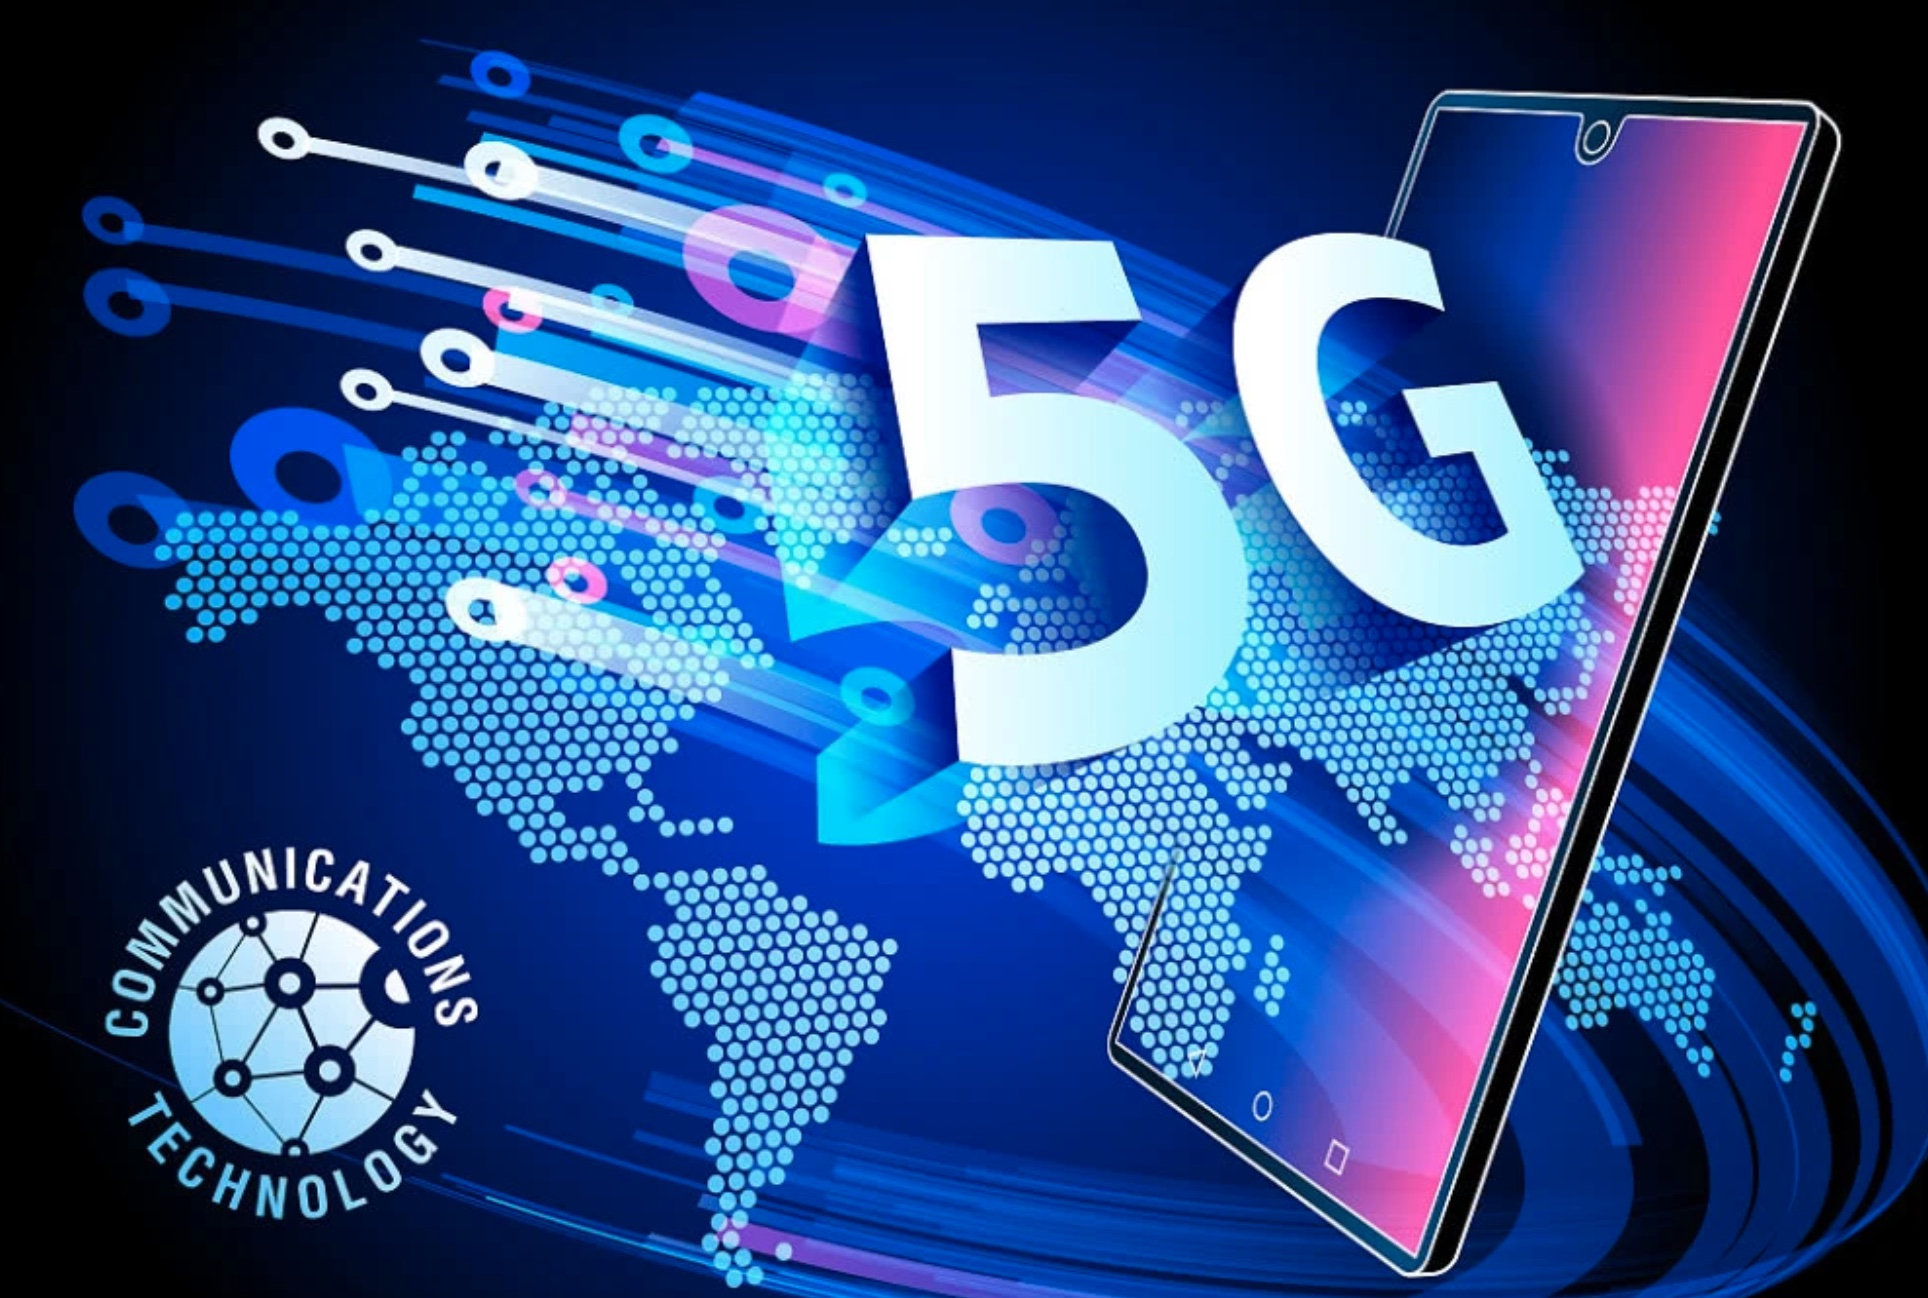 China Mobile to build 700MHz 5G network with China Broadcast Network-CnTechPost